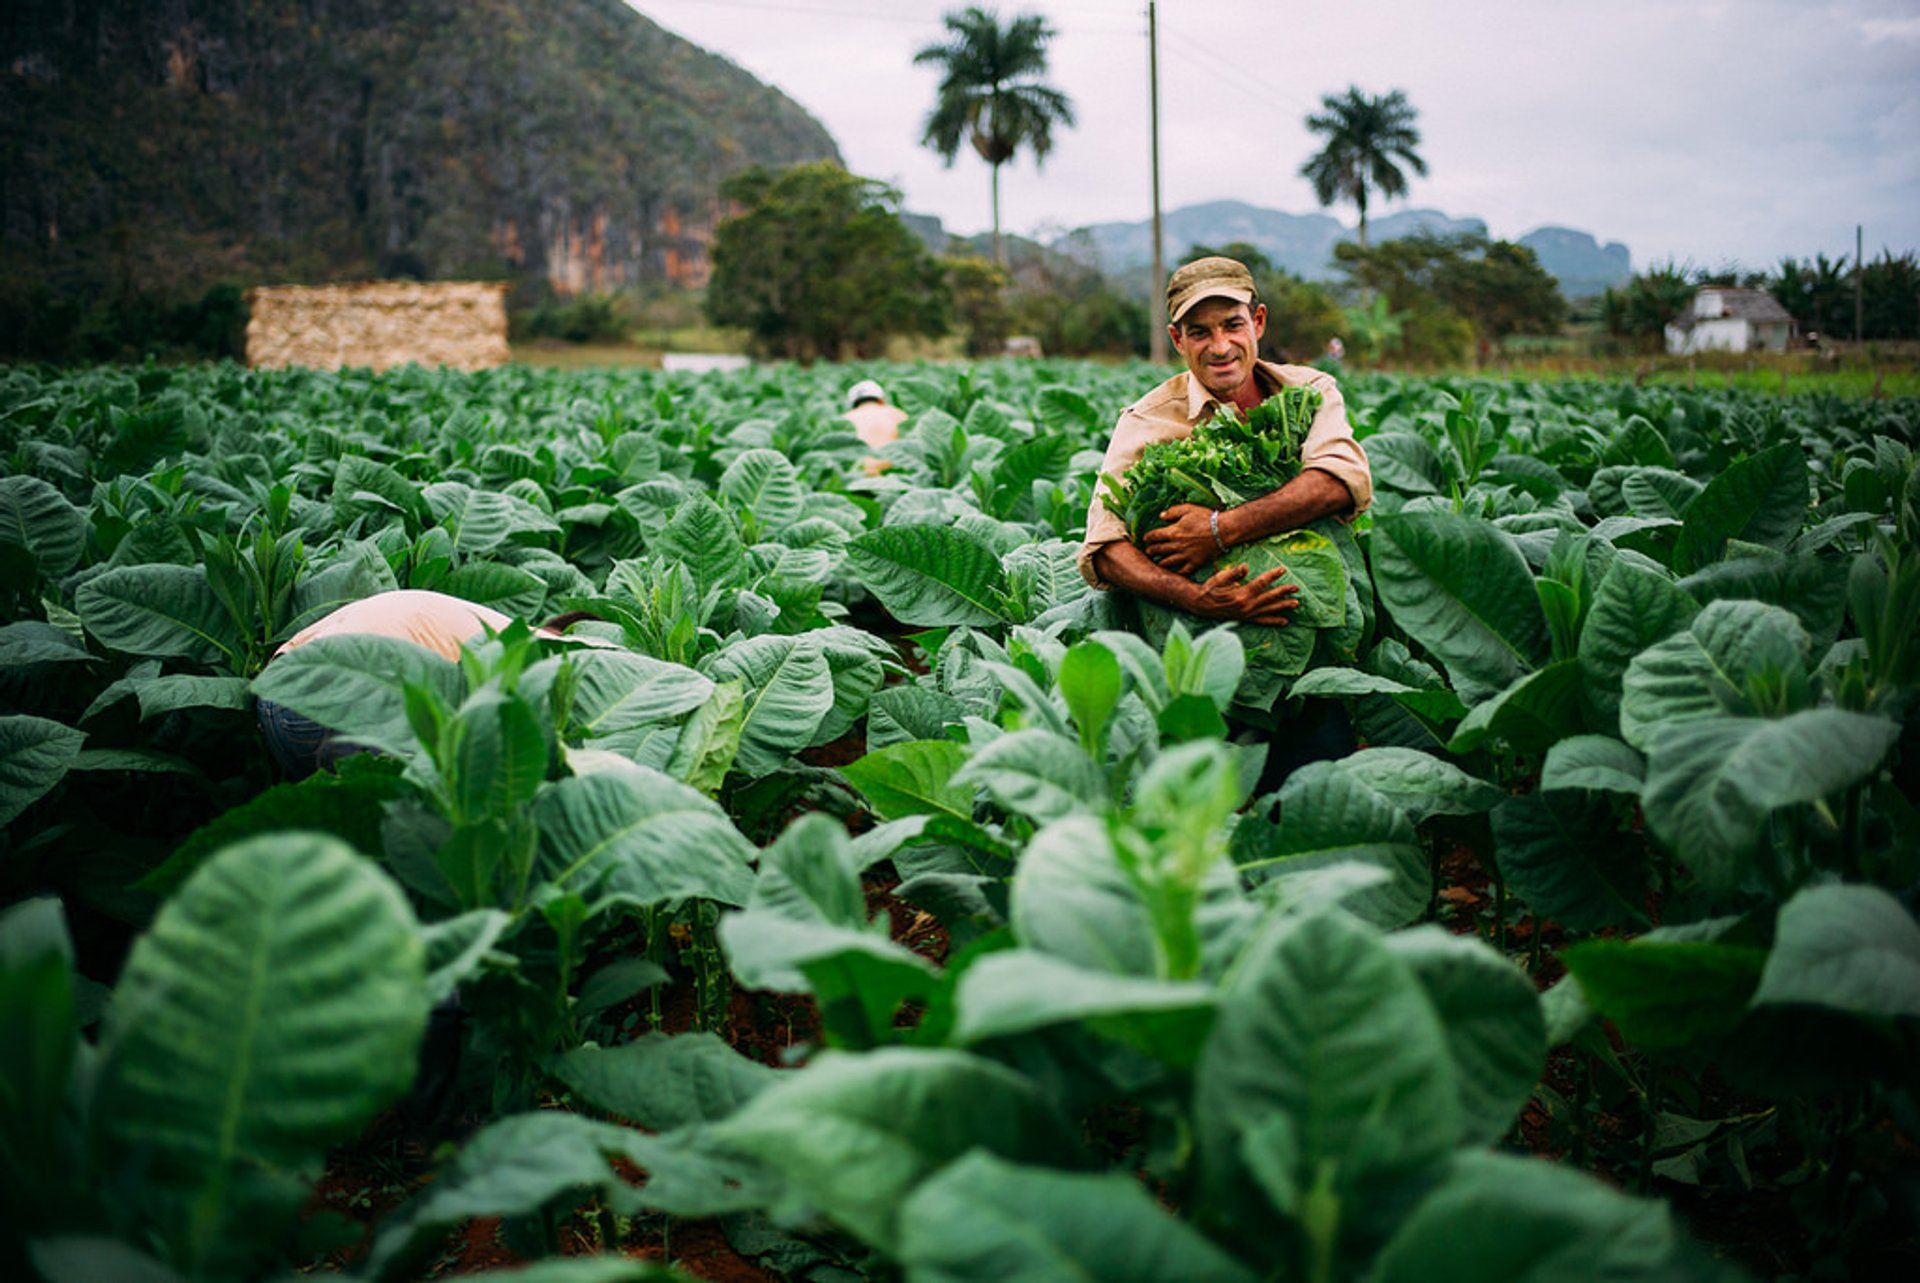 Tobacco Harvest in Cuba 2020 - Best Time